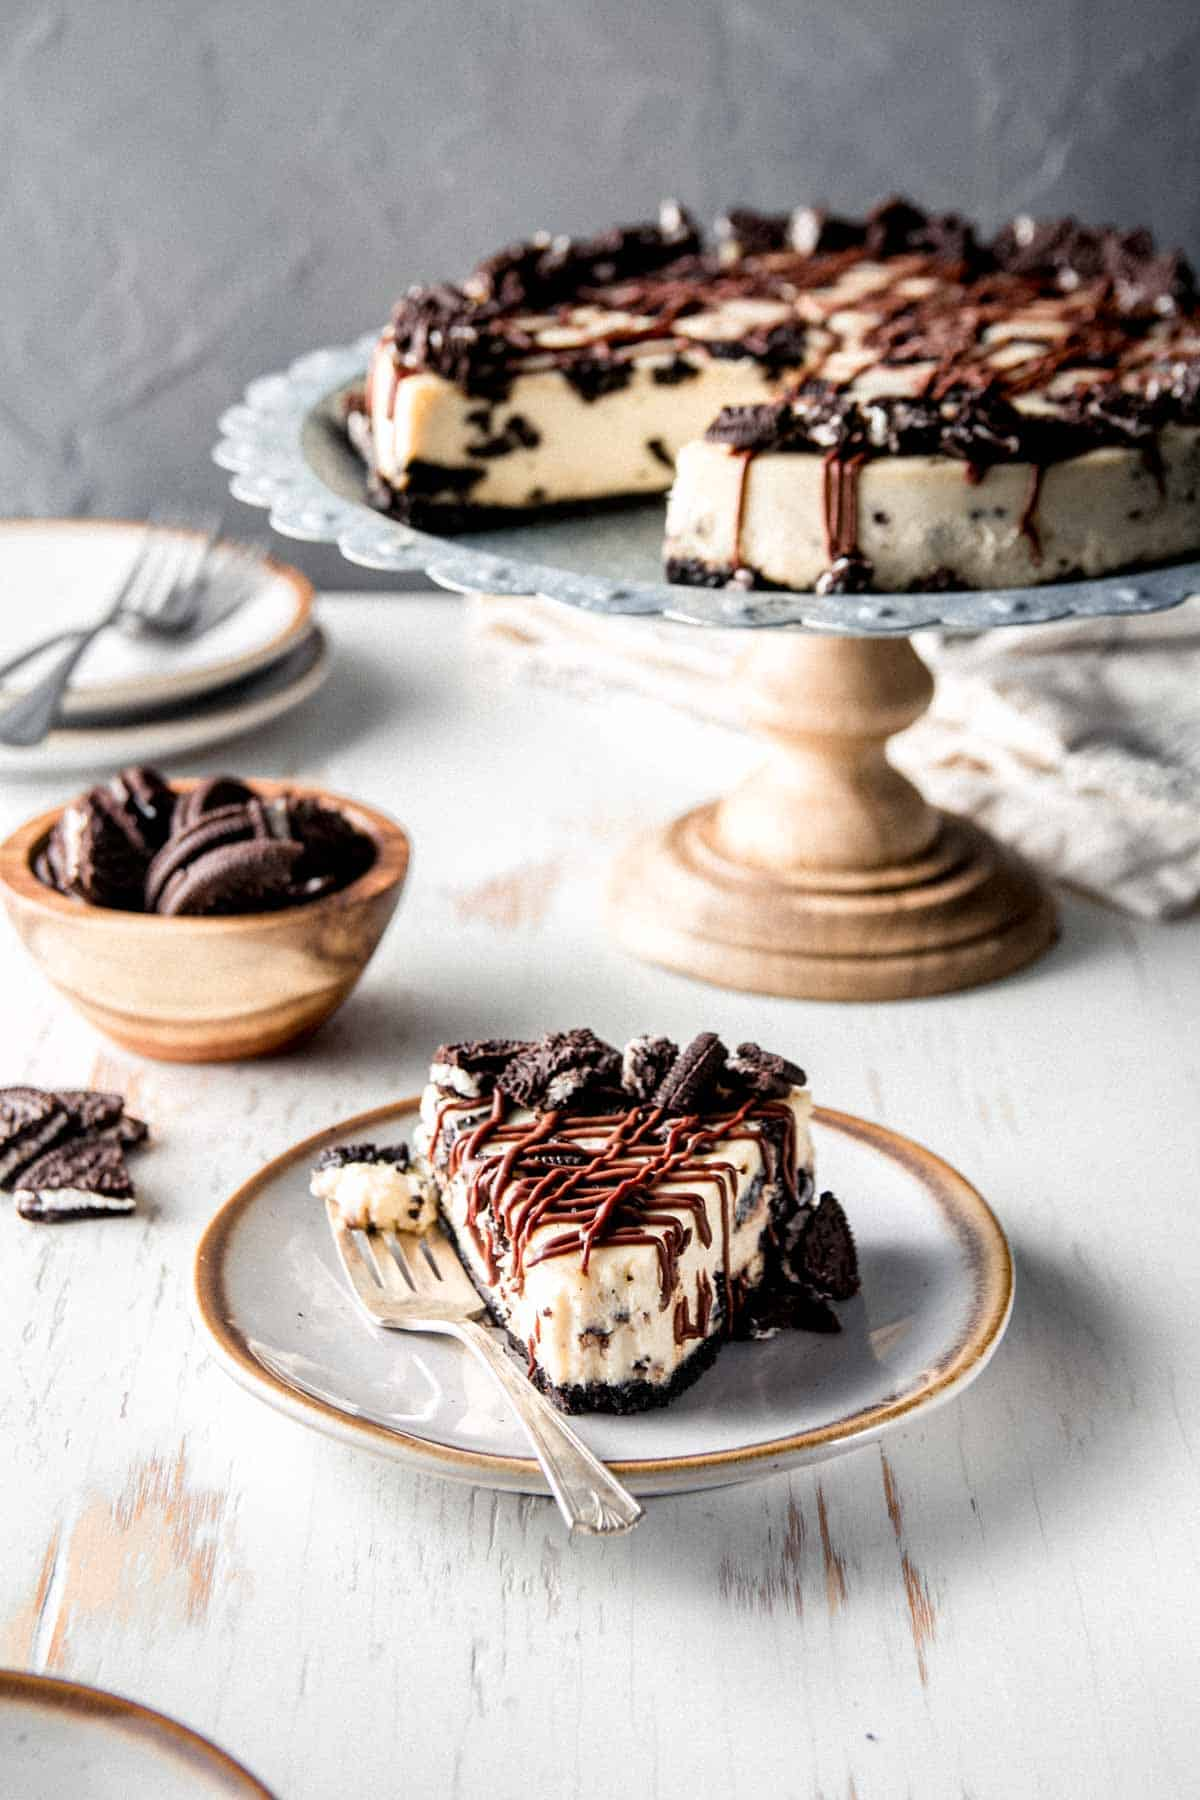 A slice of gluten free Oreo cheesecake on a plate drizzled with chocolate ganache. A bite is taken.